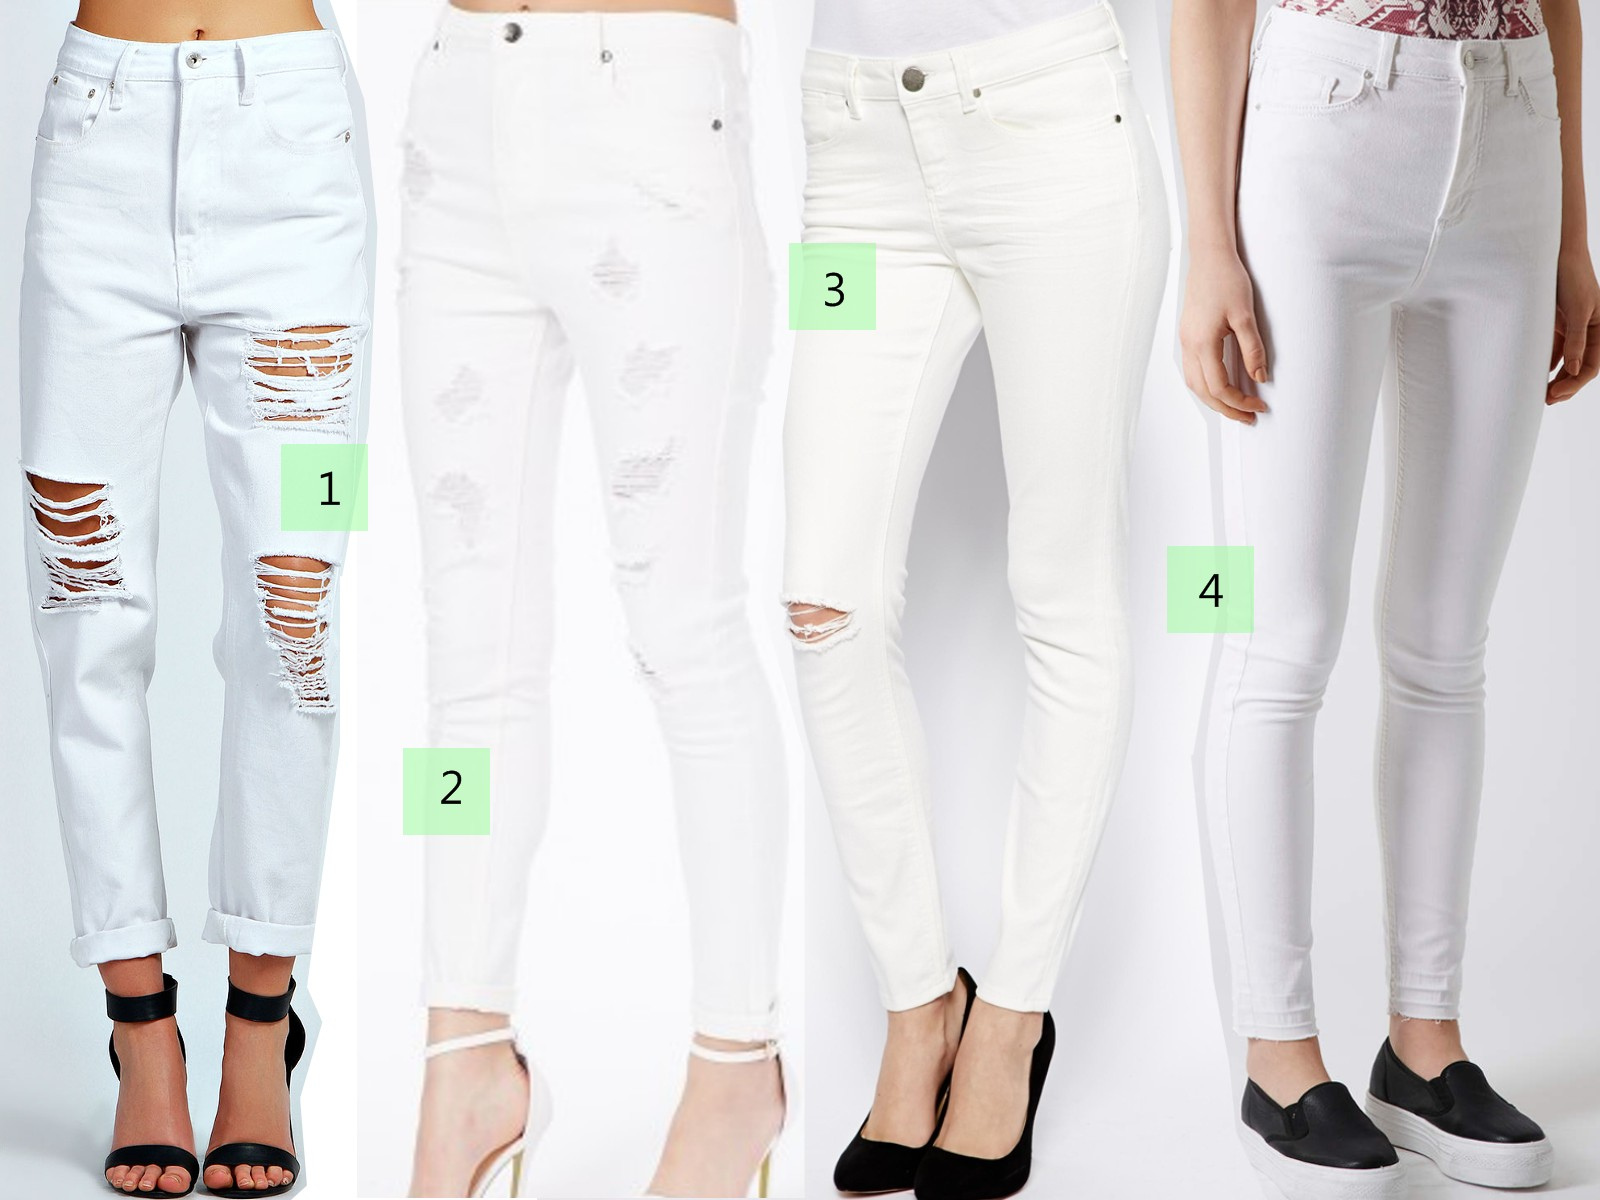 White Jeans Outfits Fashion Trend